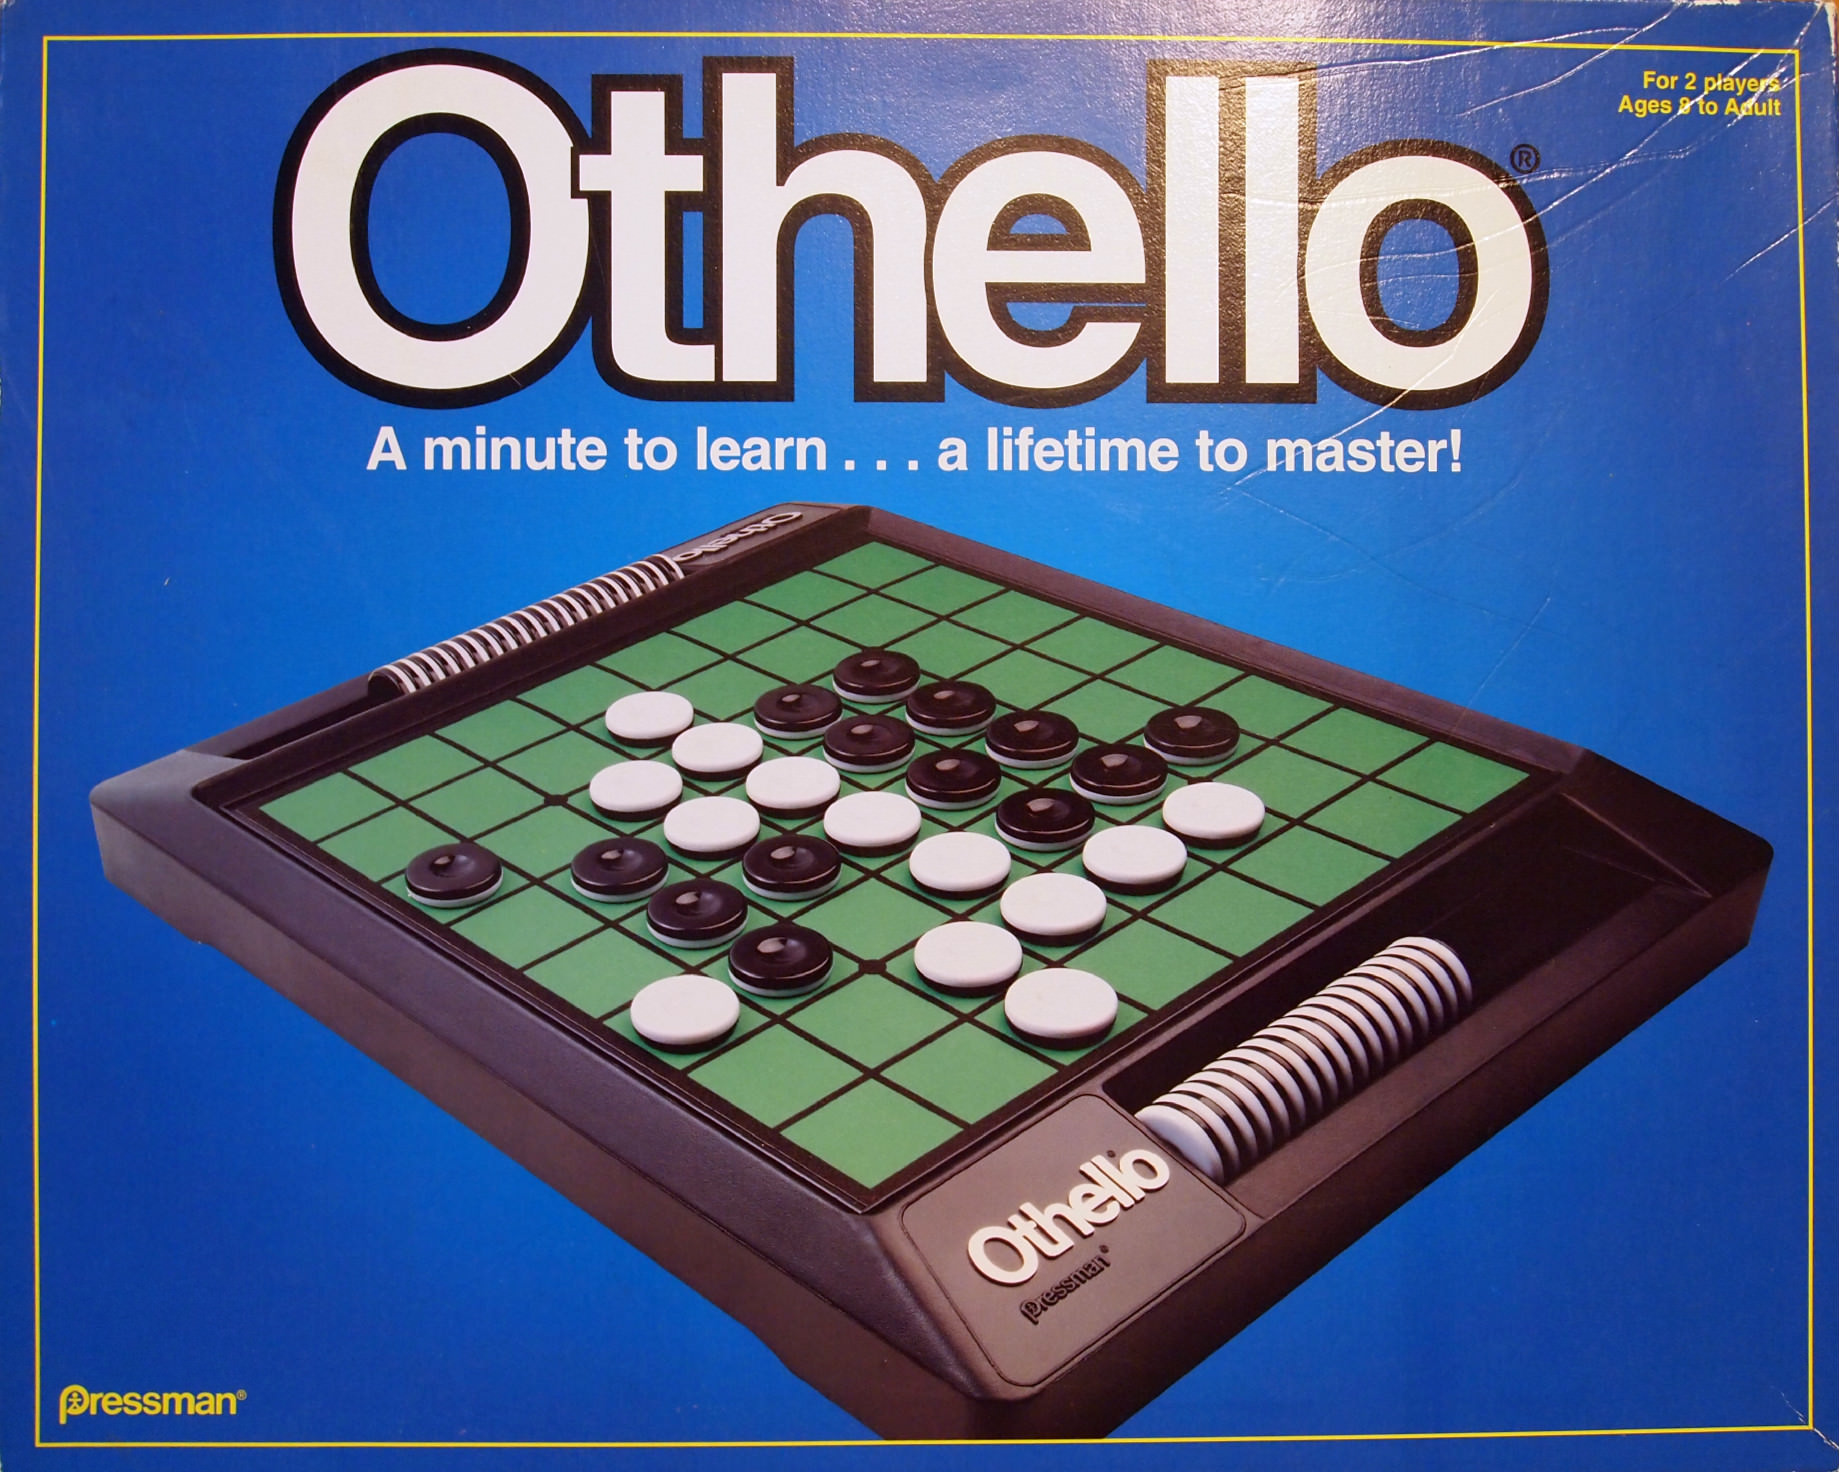 Othello reversi strategy game